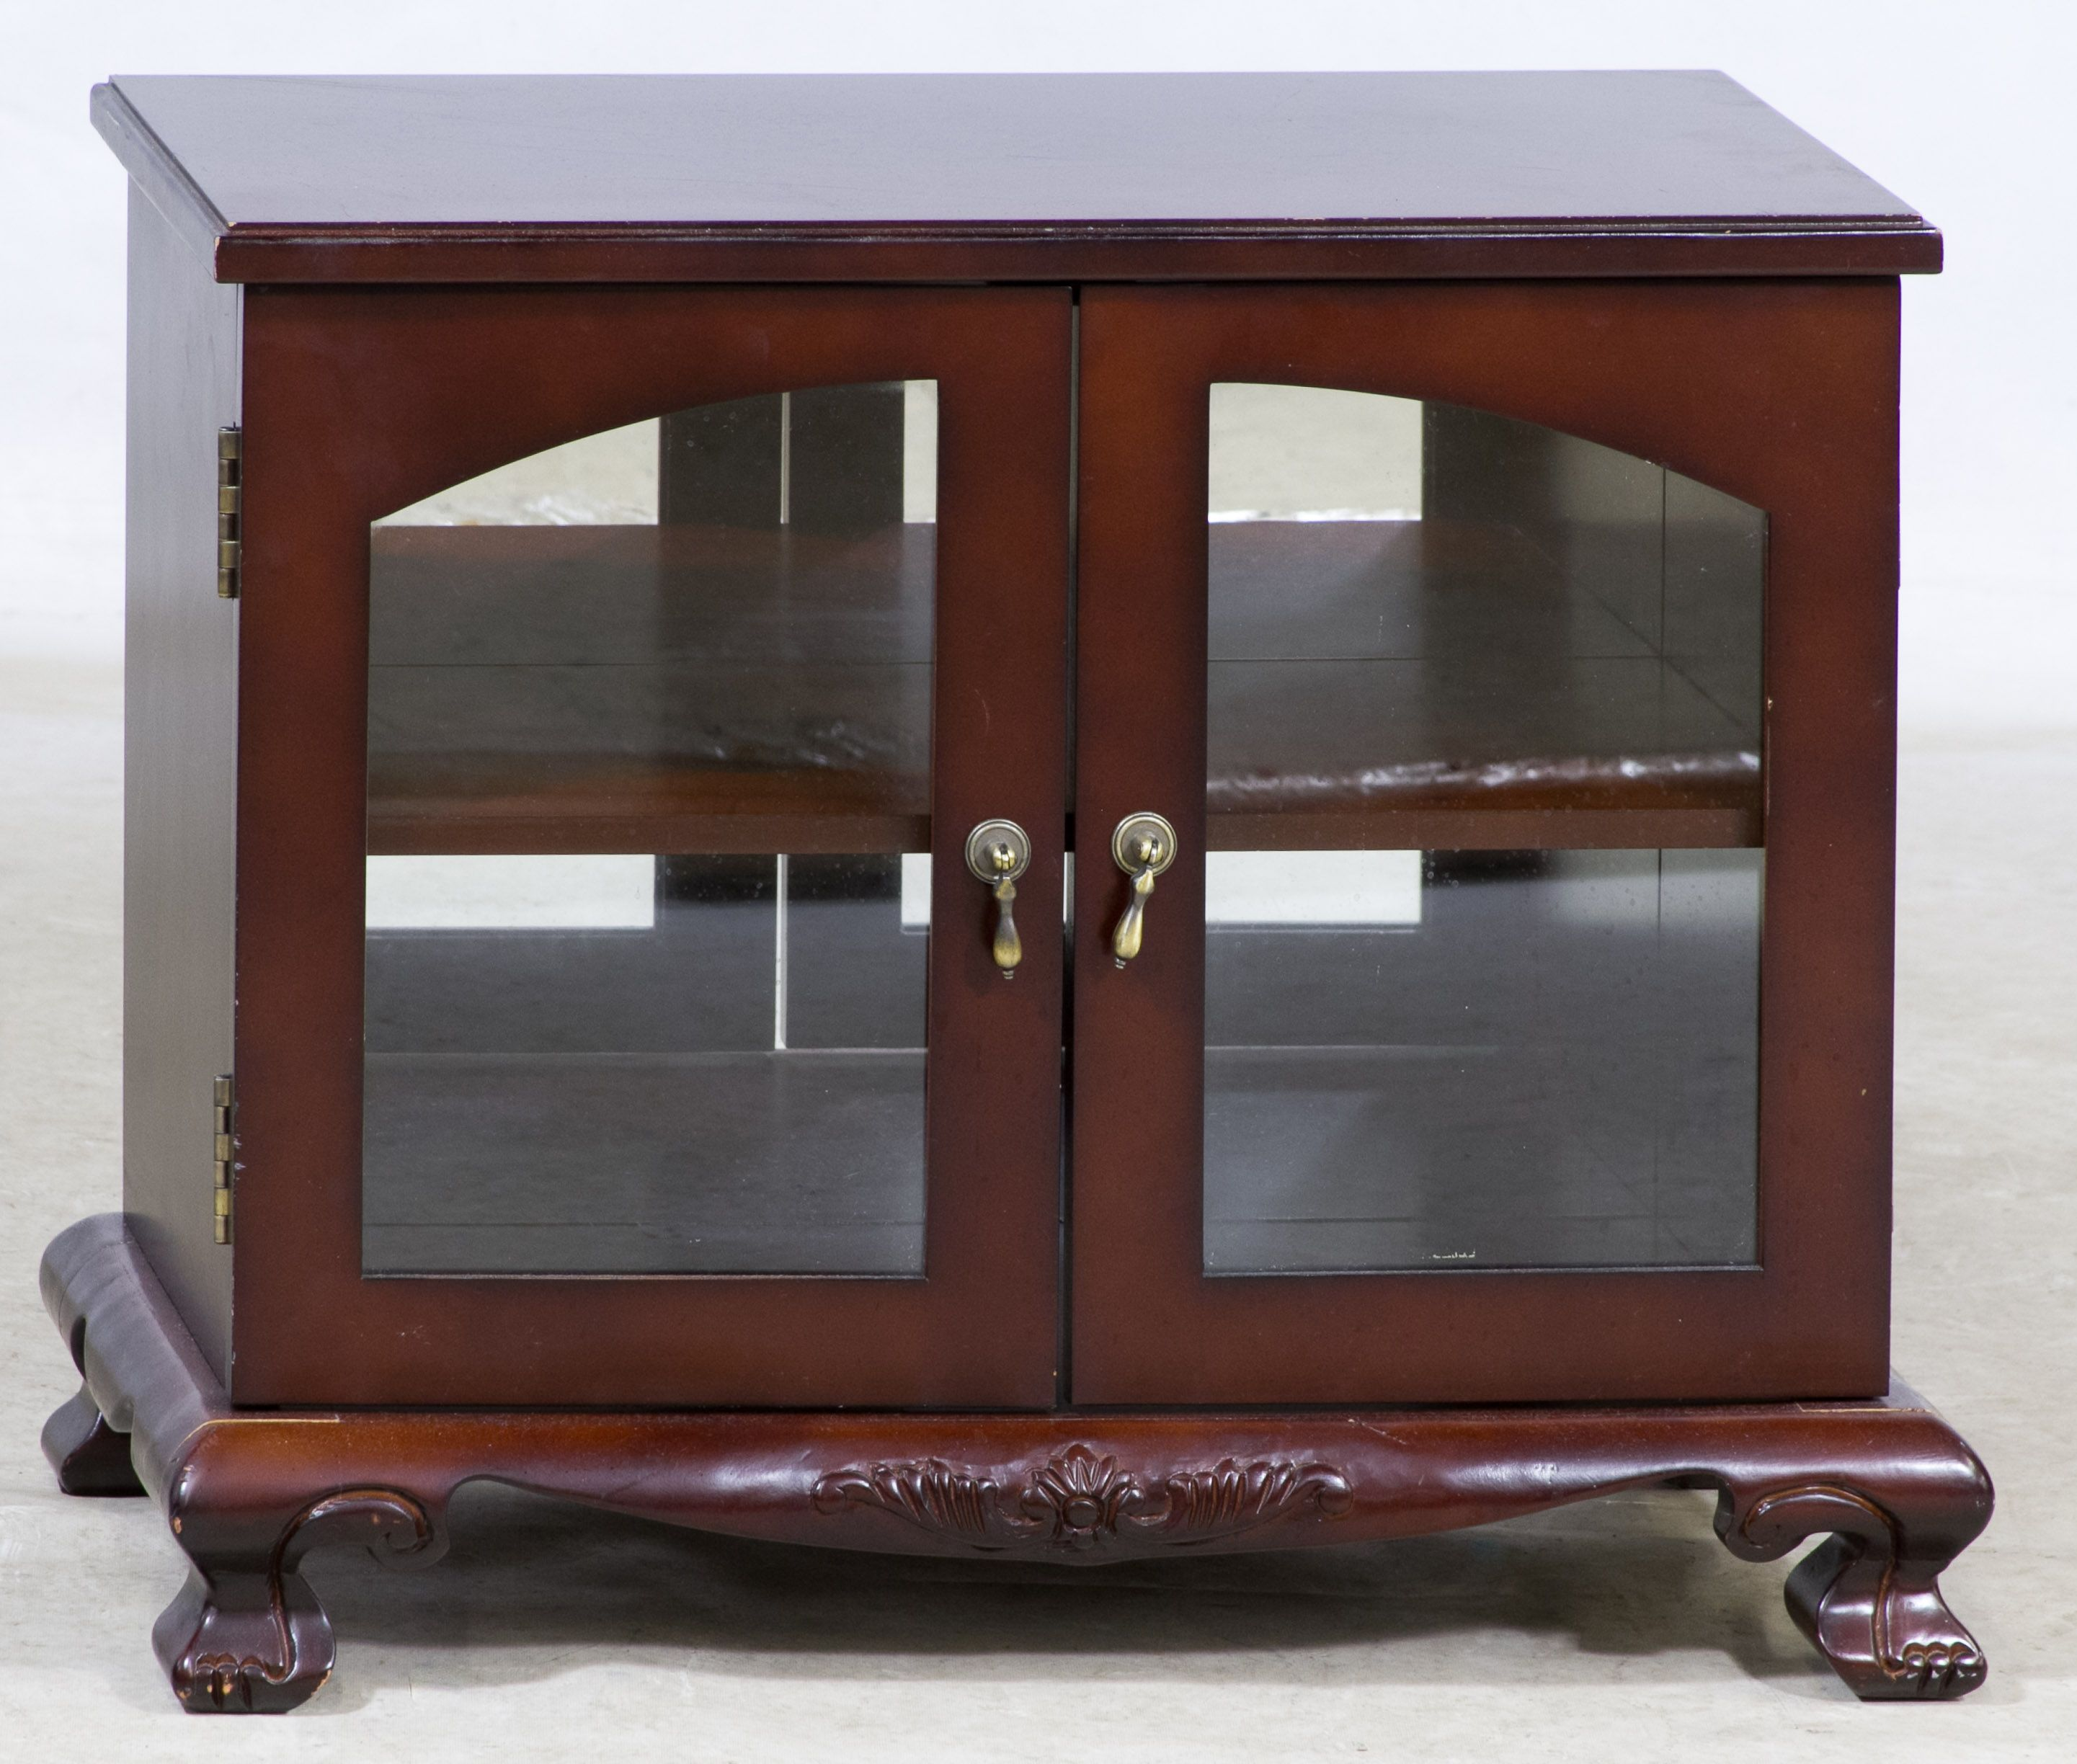 Lot 627 Mahogany Stained Display Cabinet Small Table Top Cabinet